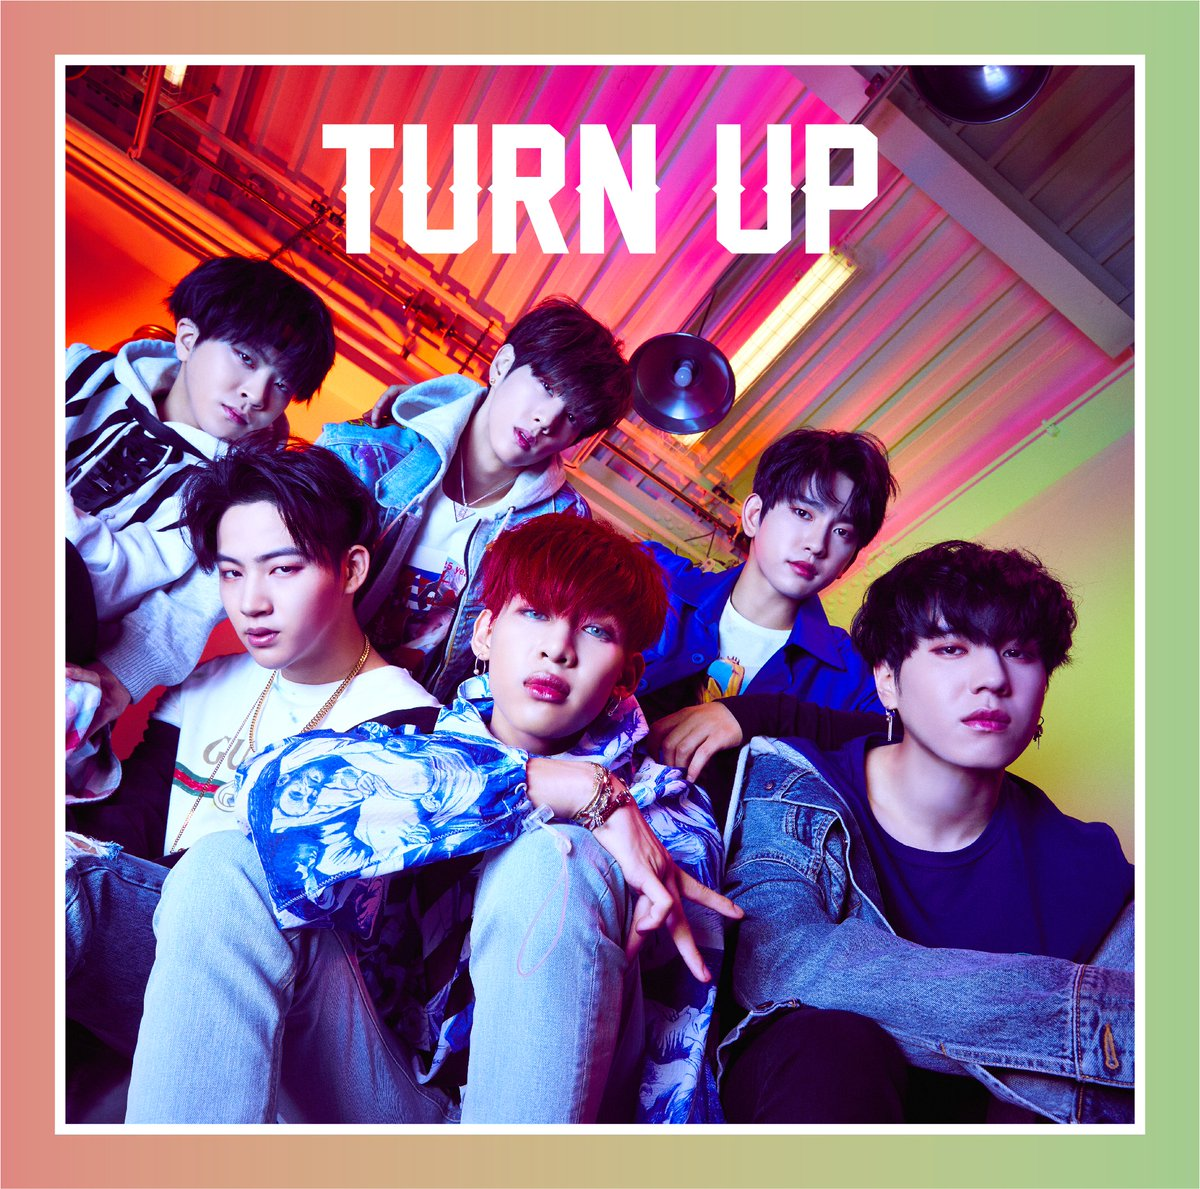 GOT7 'Turn Up' for Japanese comeback without Jackson in group teaser images and video https://t.co/w7Z2YyHOGK